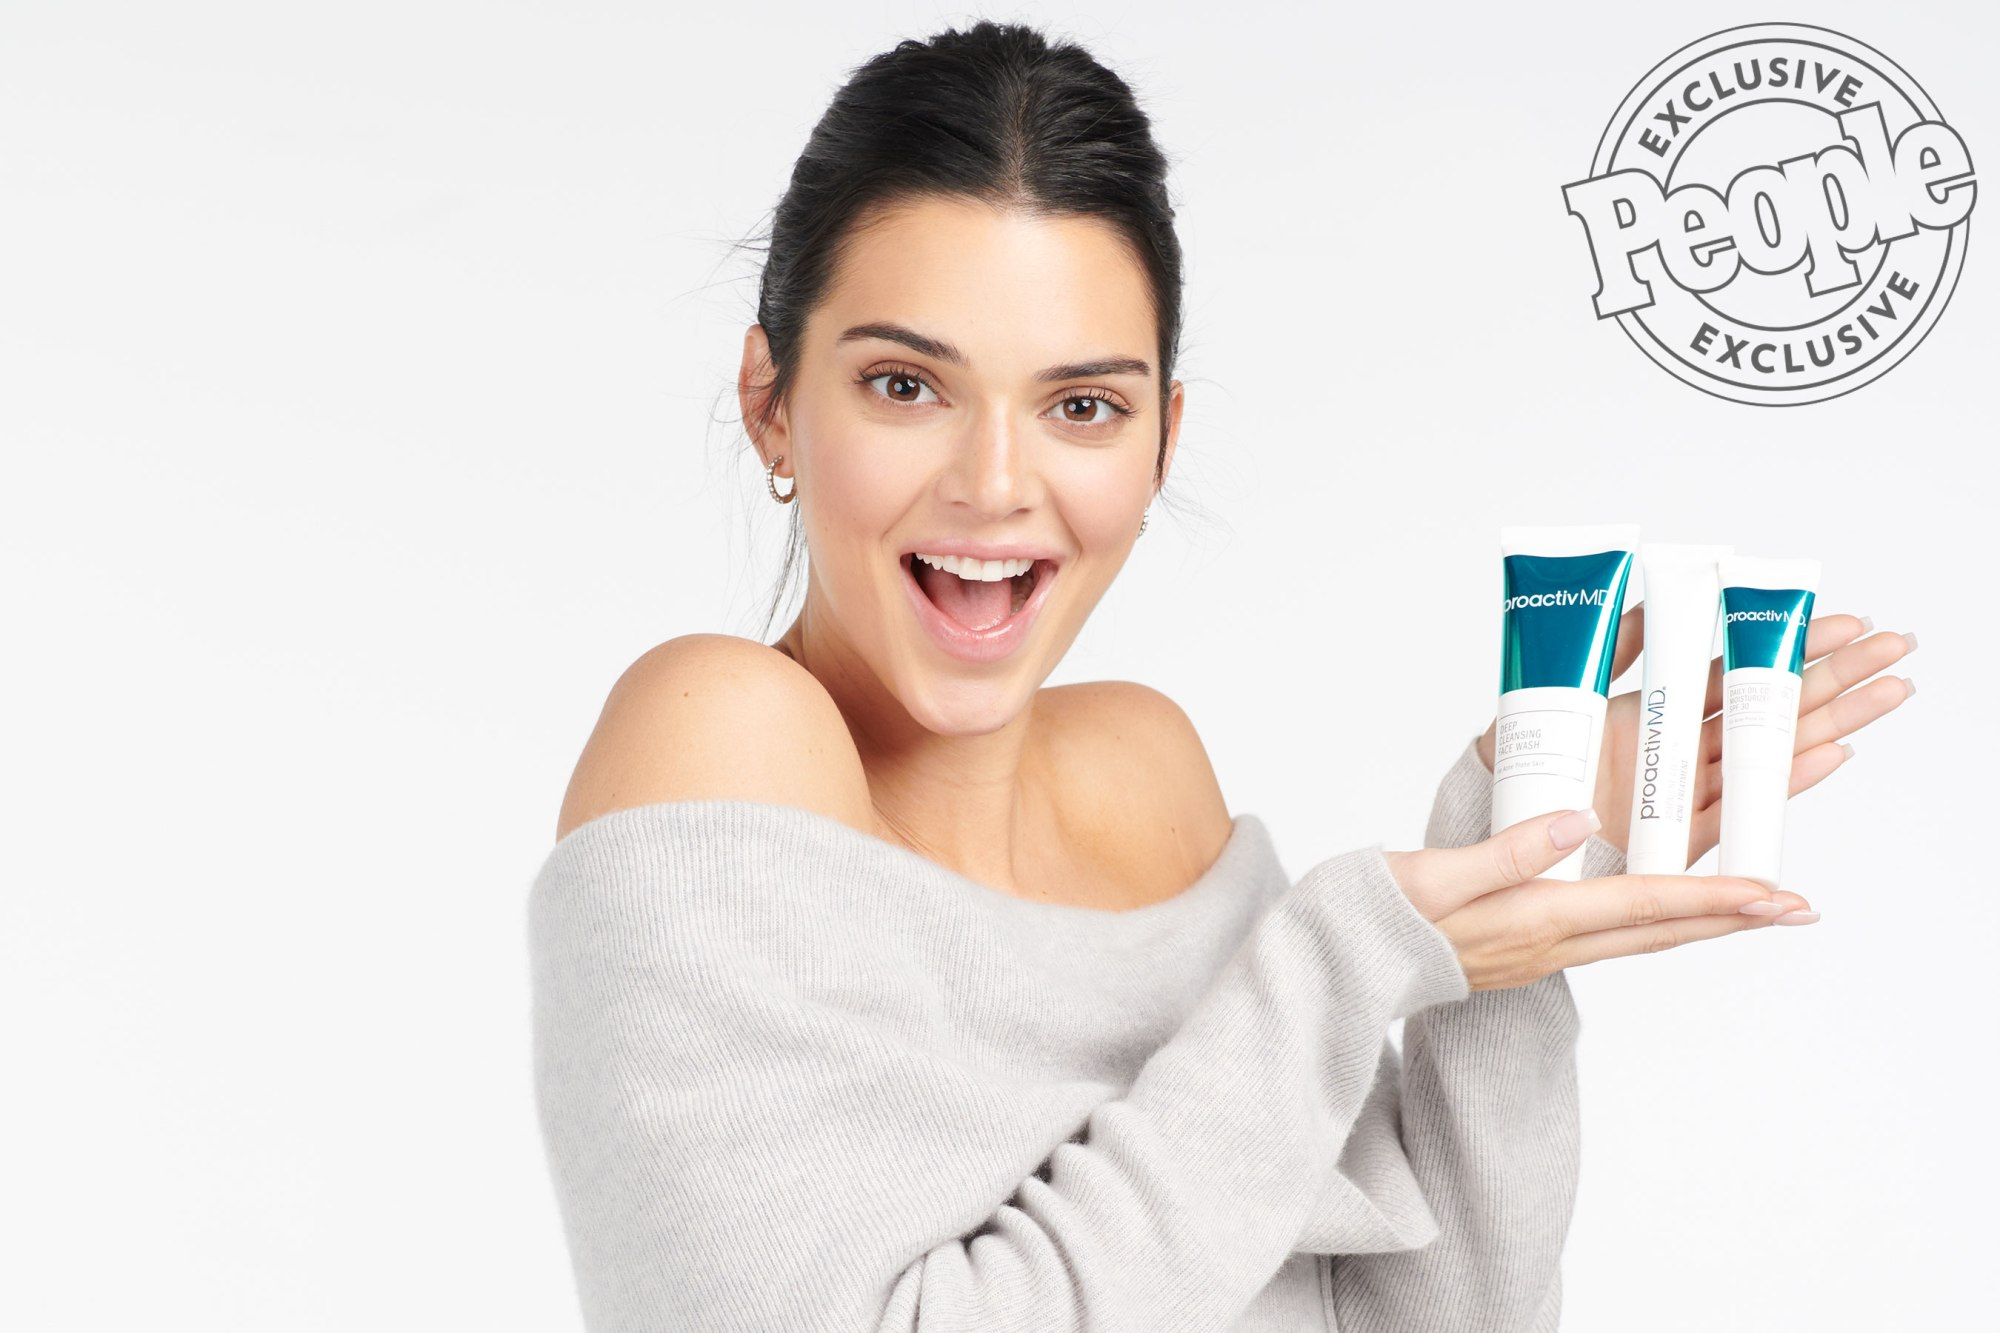 kendall jenner gay proactiv